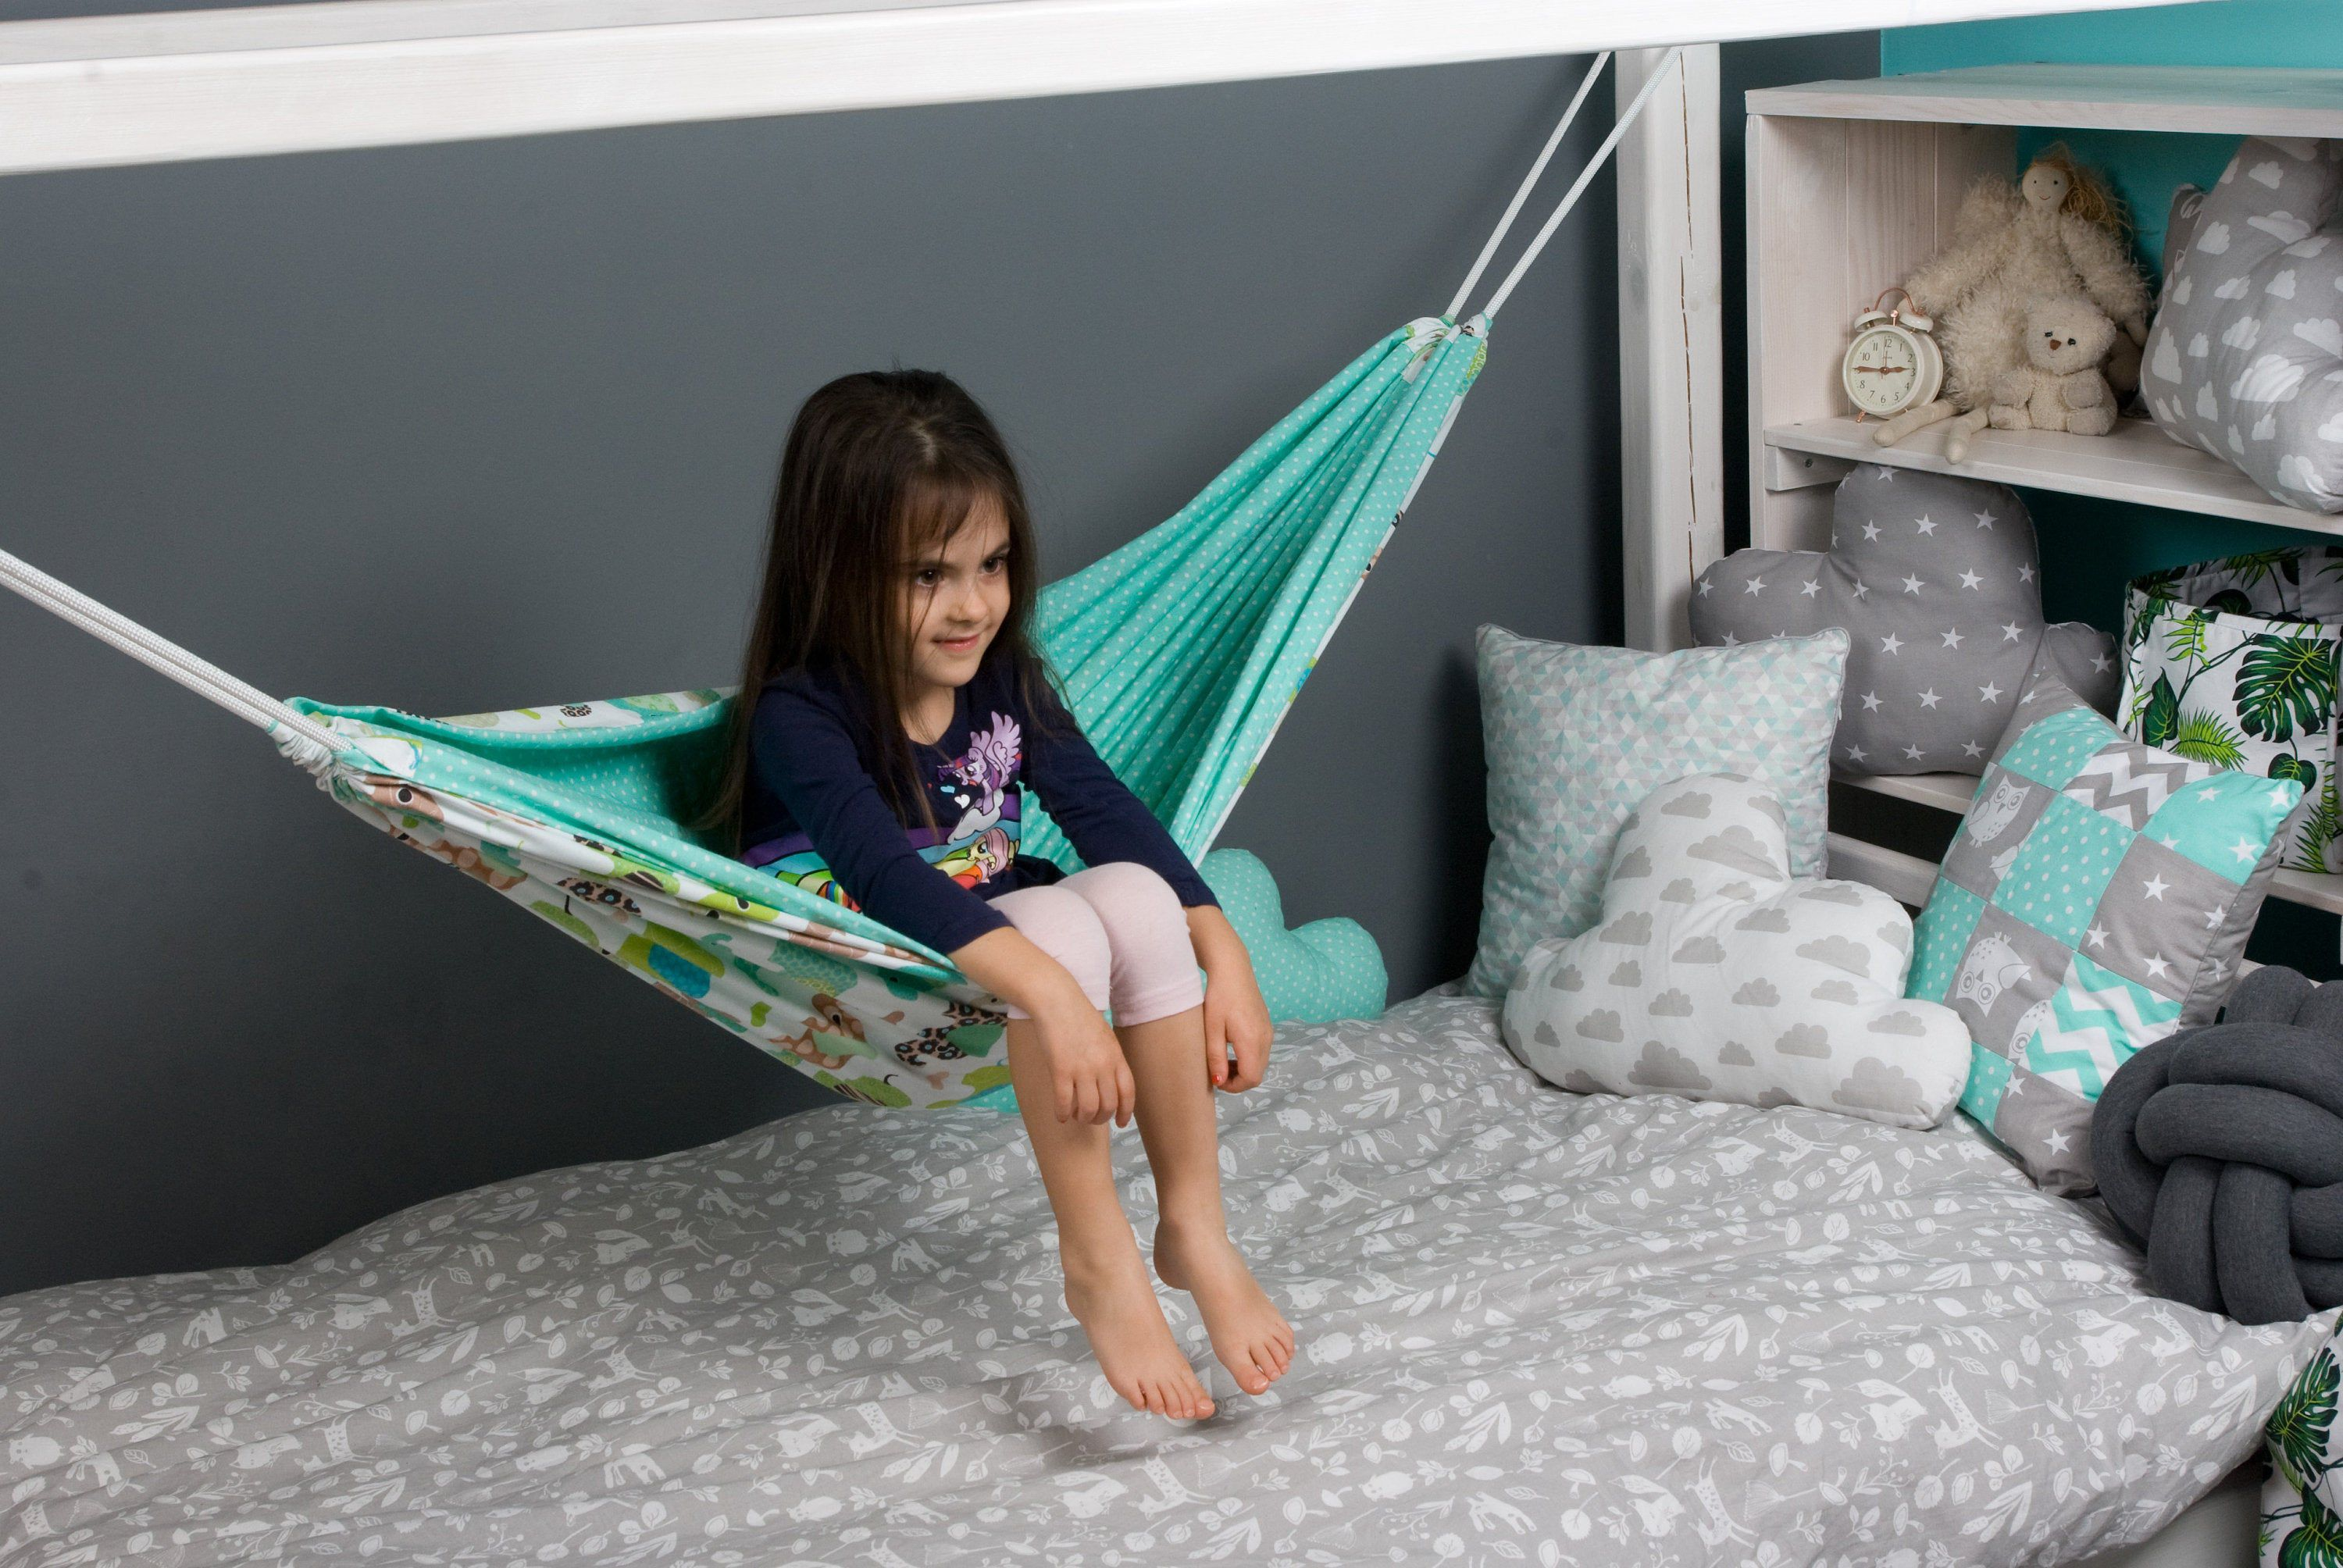 Hammock for toddler bed house Kids fabric Swing Indoor